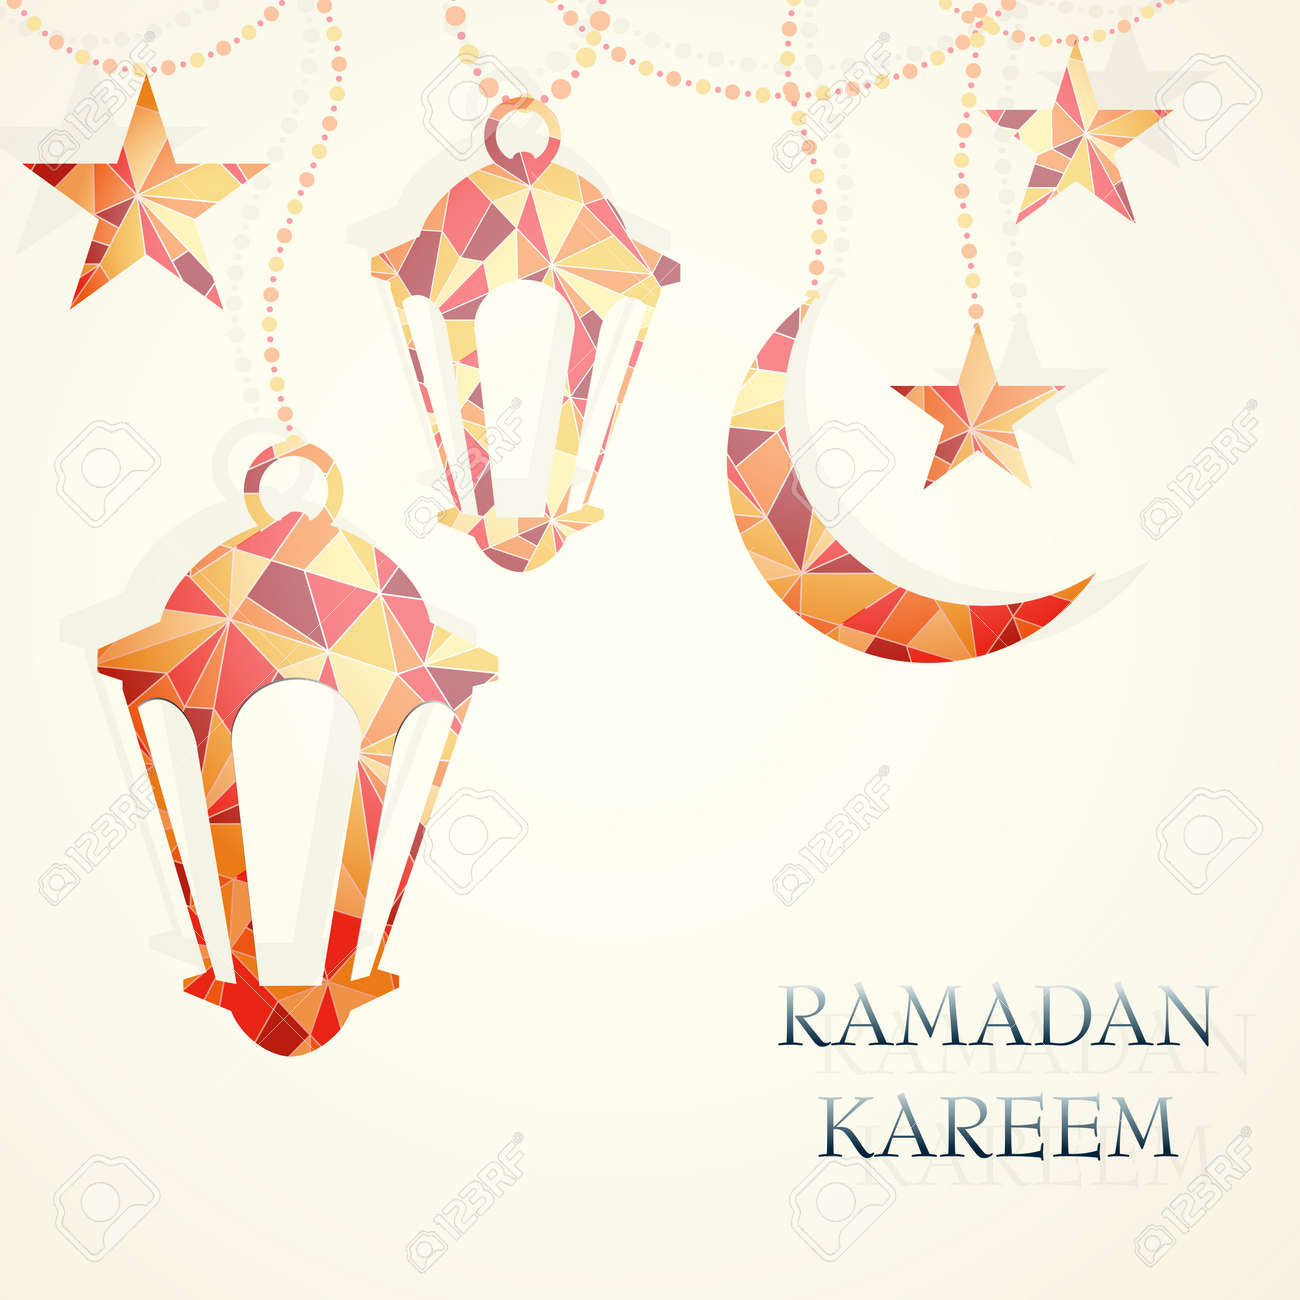 Ramadan greeting card design royalty free cliparts vectors and ramadan greeting card design stock vector 29855171 m4hsunfo Image collections